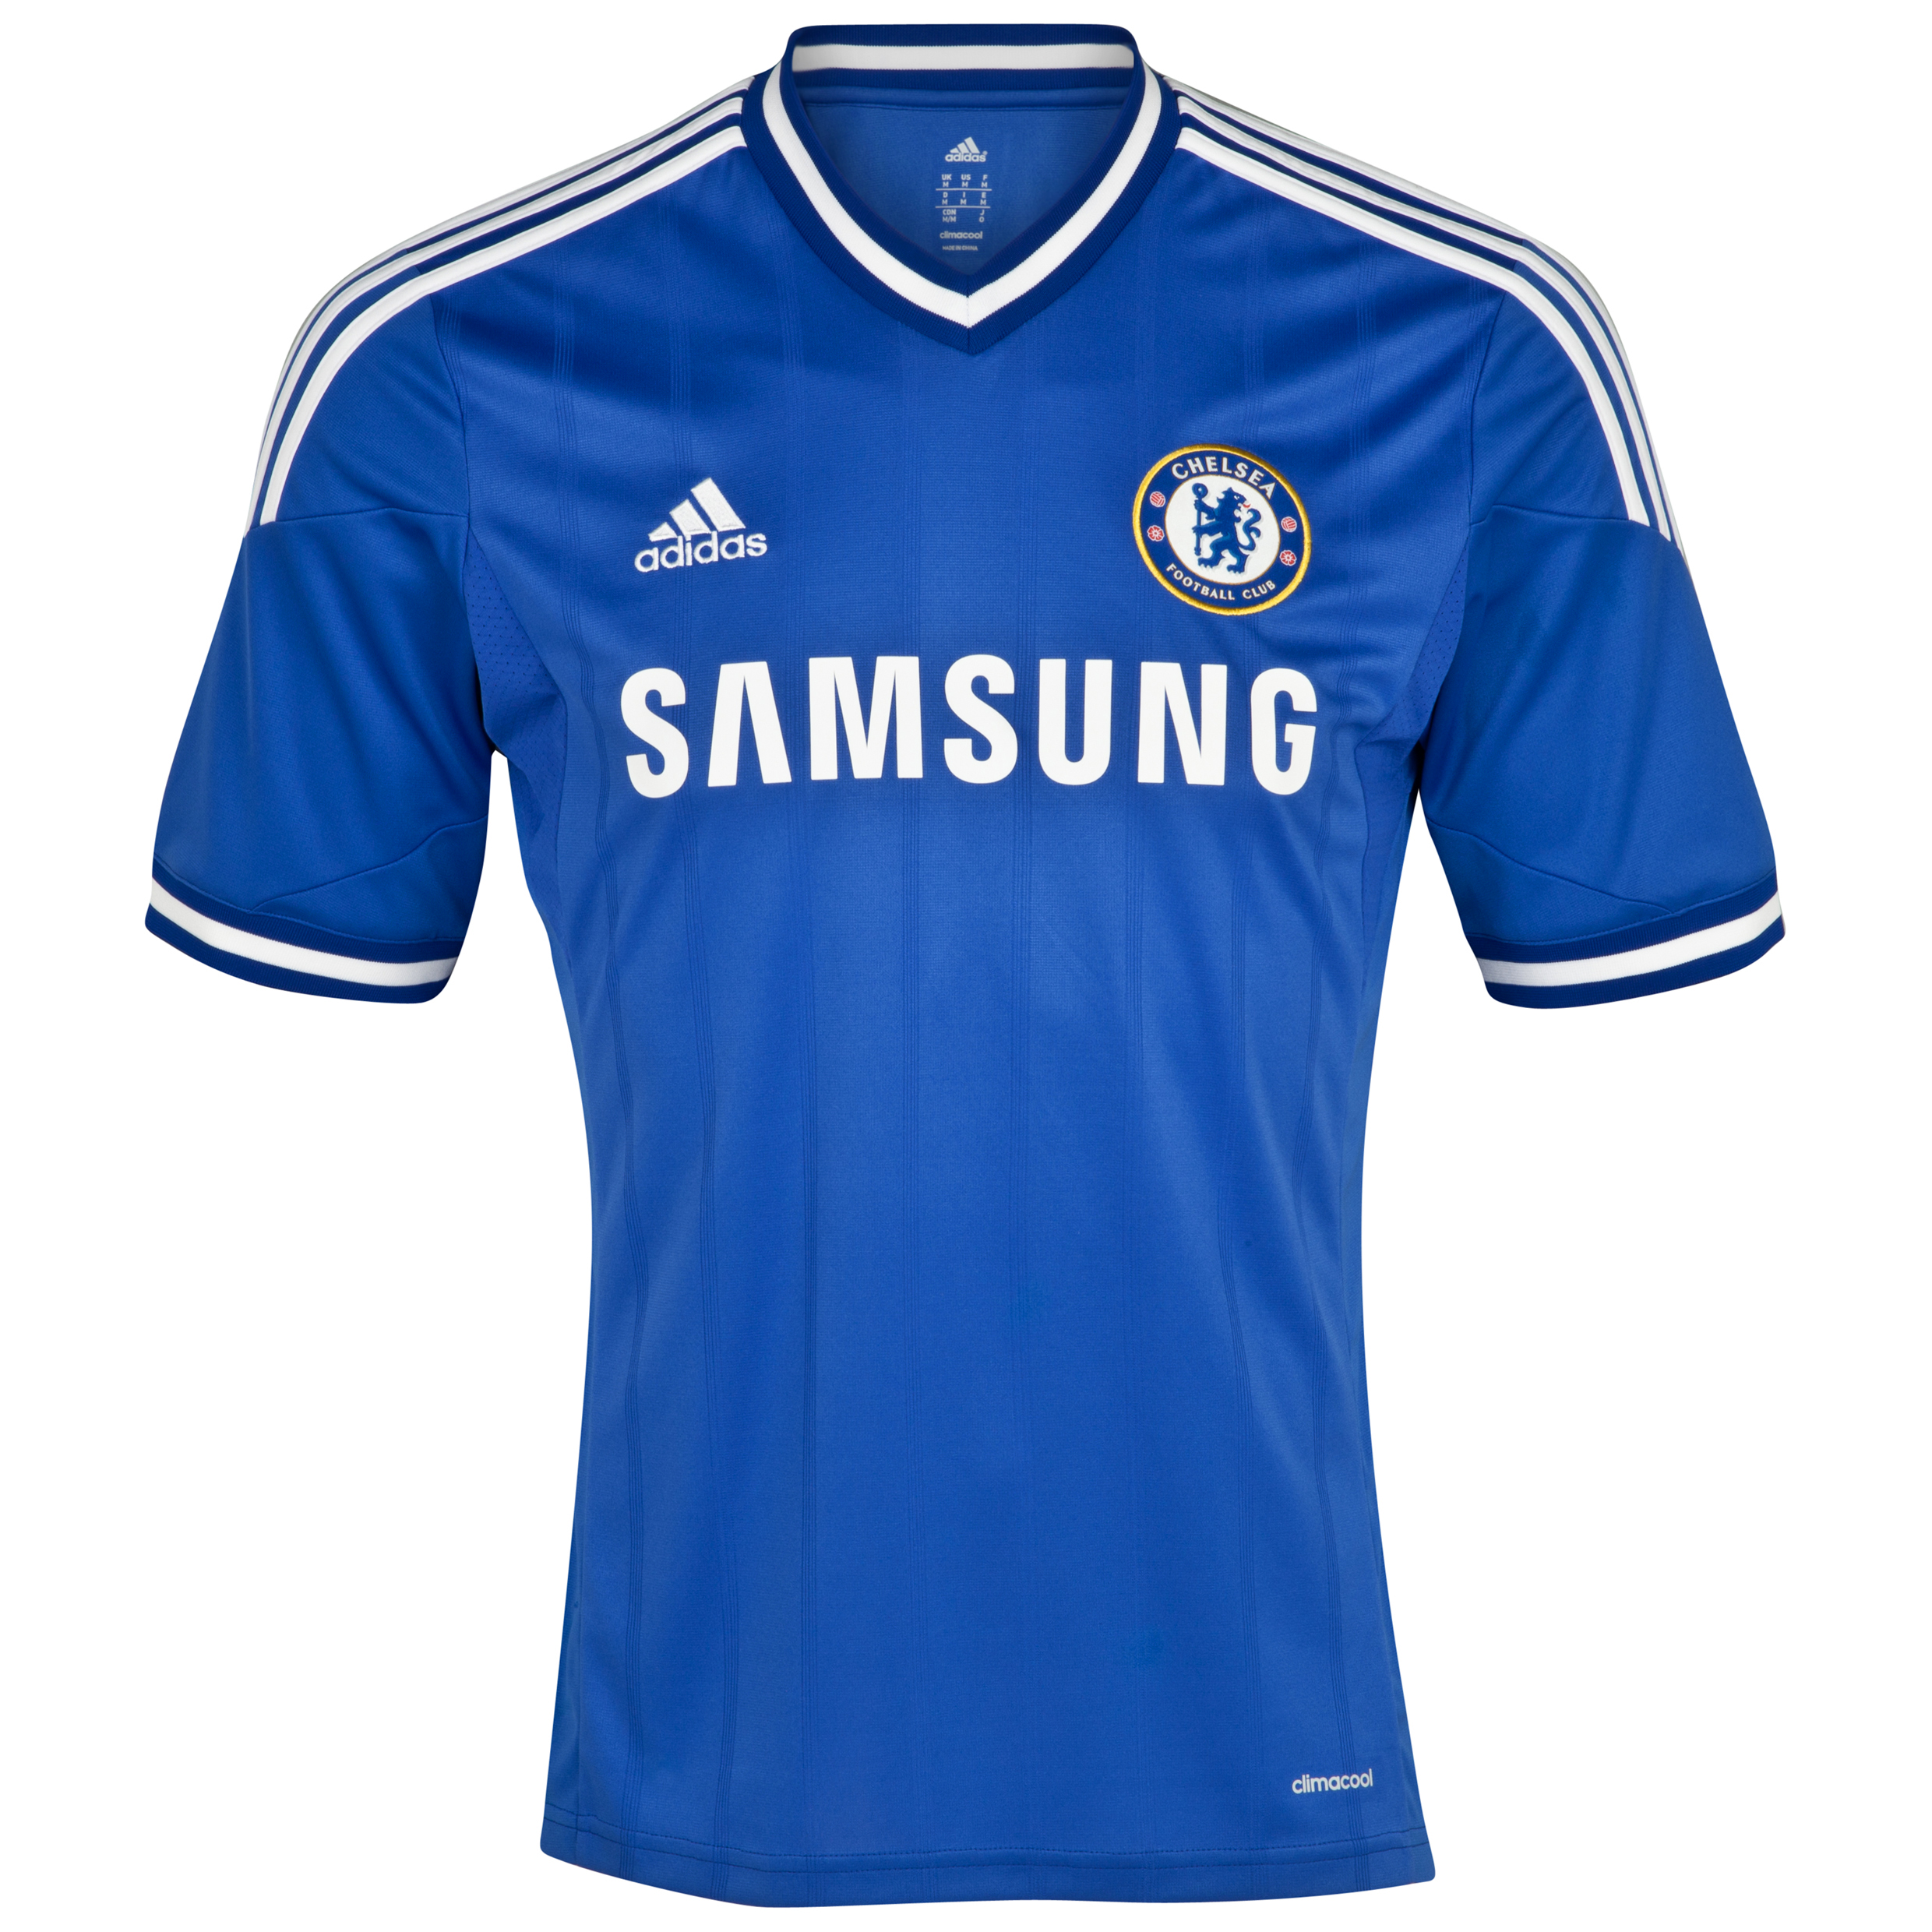 Chelsea Home Shirt 2013/14 - Outsize